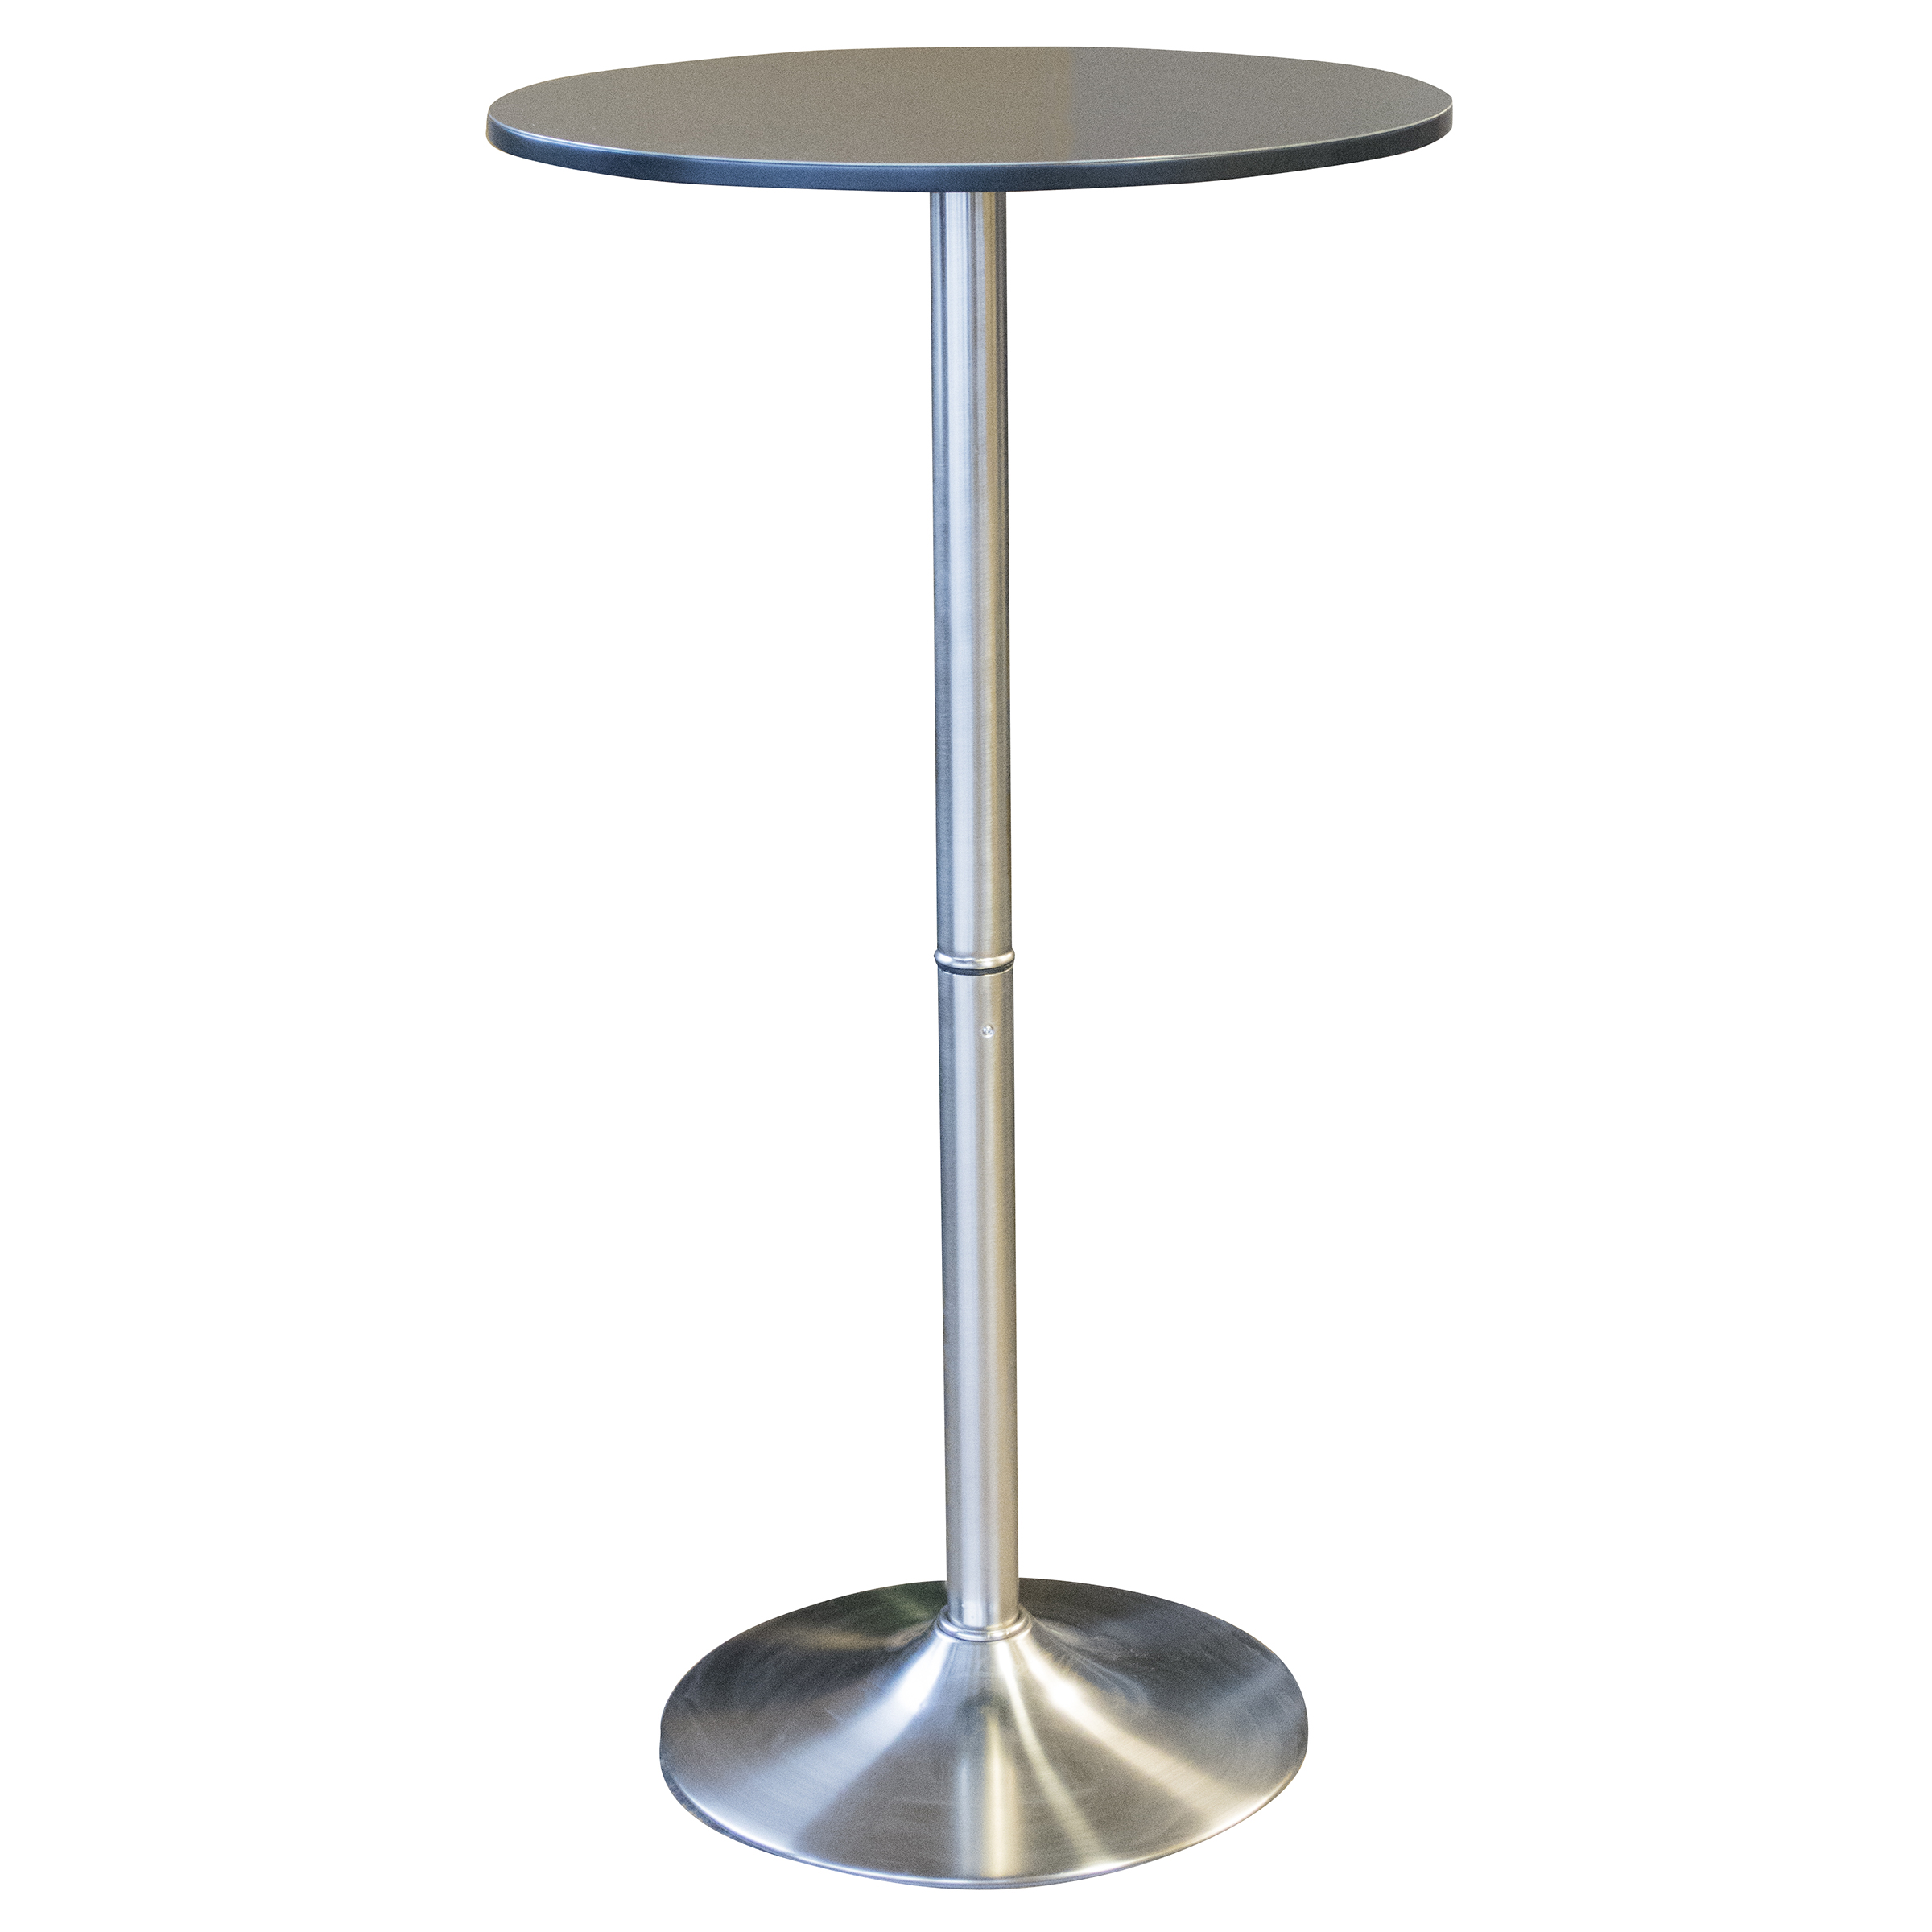 AmeriHome Round Stainless Steel Bar Table 44 inch High x 23.5 Diameter Top